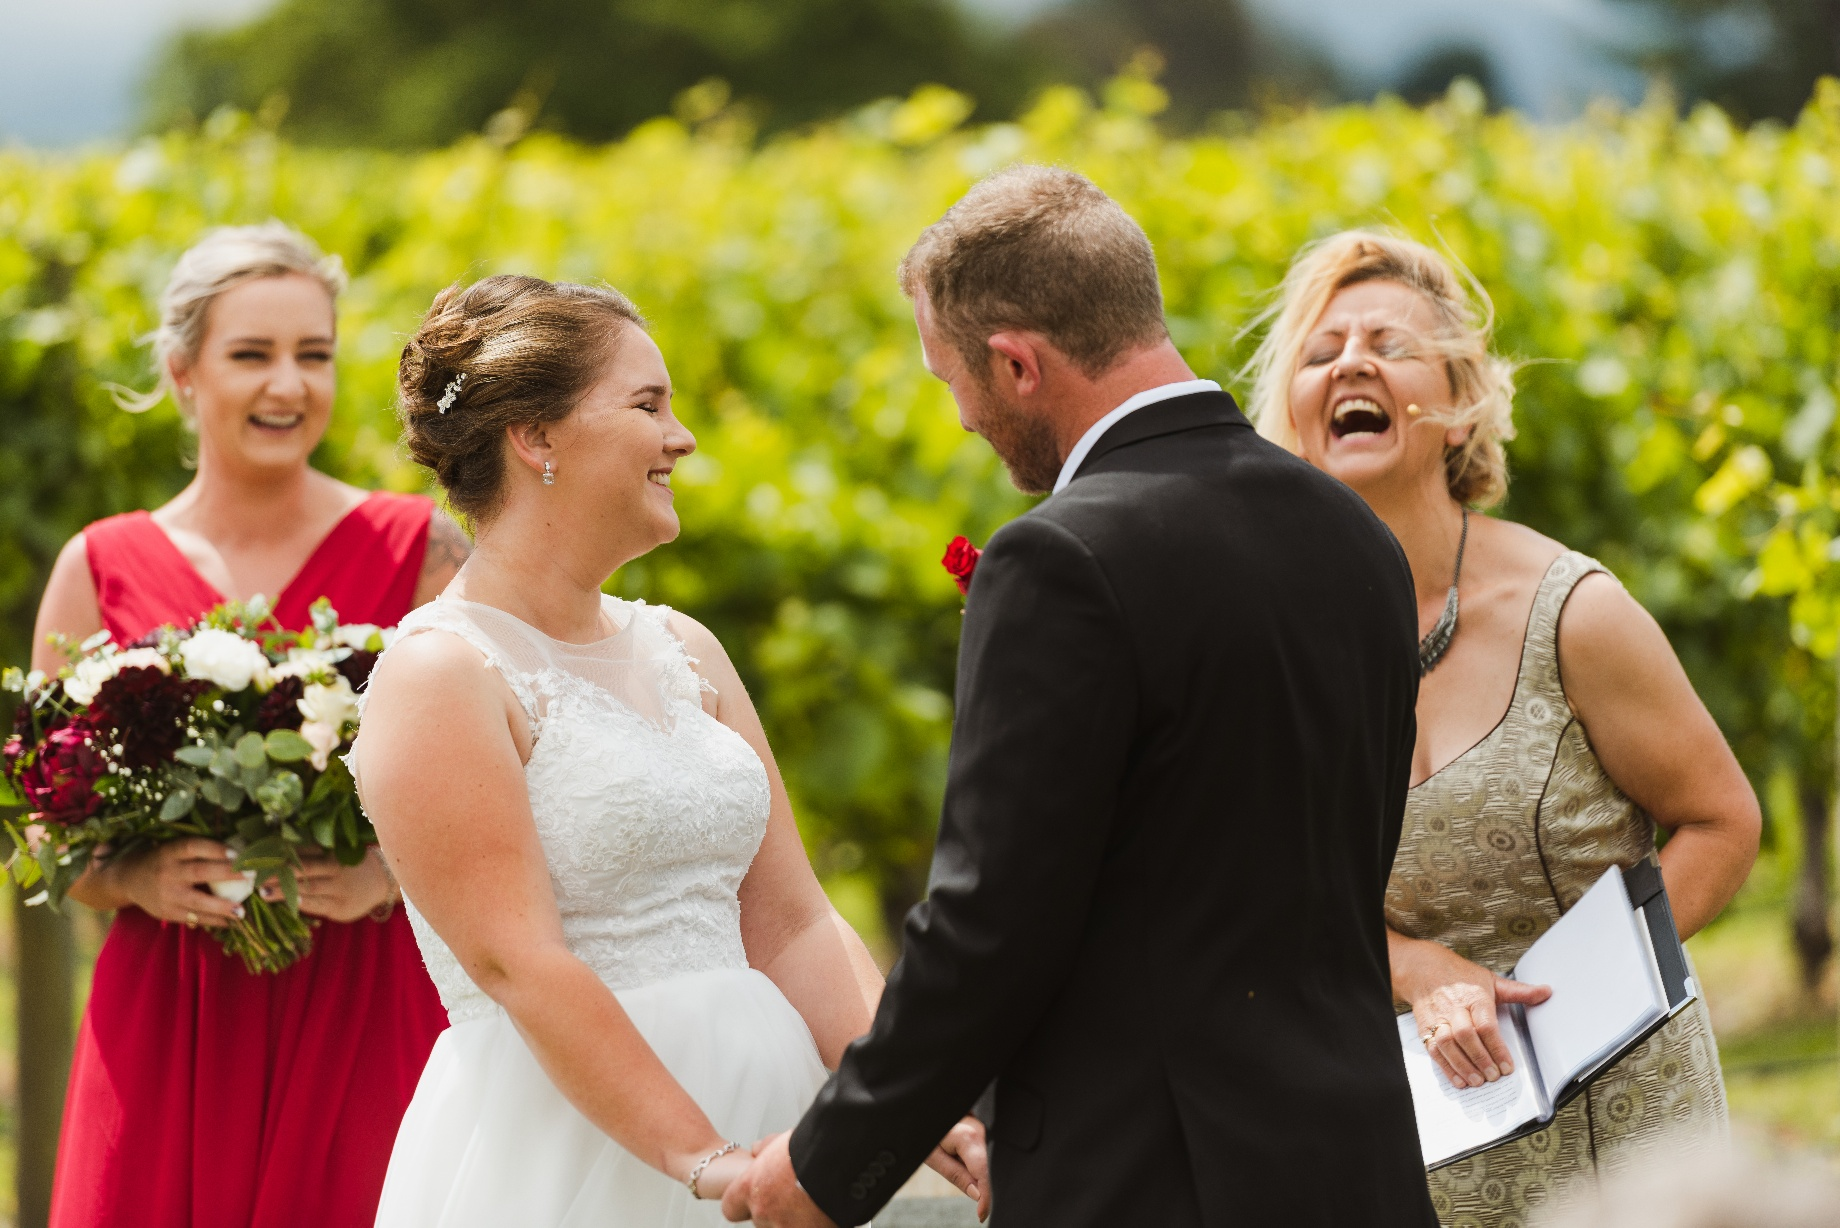 A lighthearted moment during the ceremony…